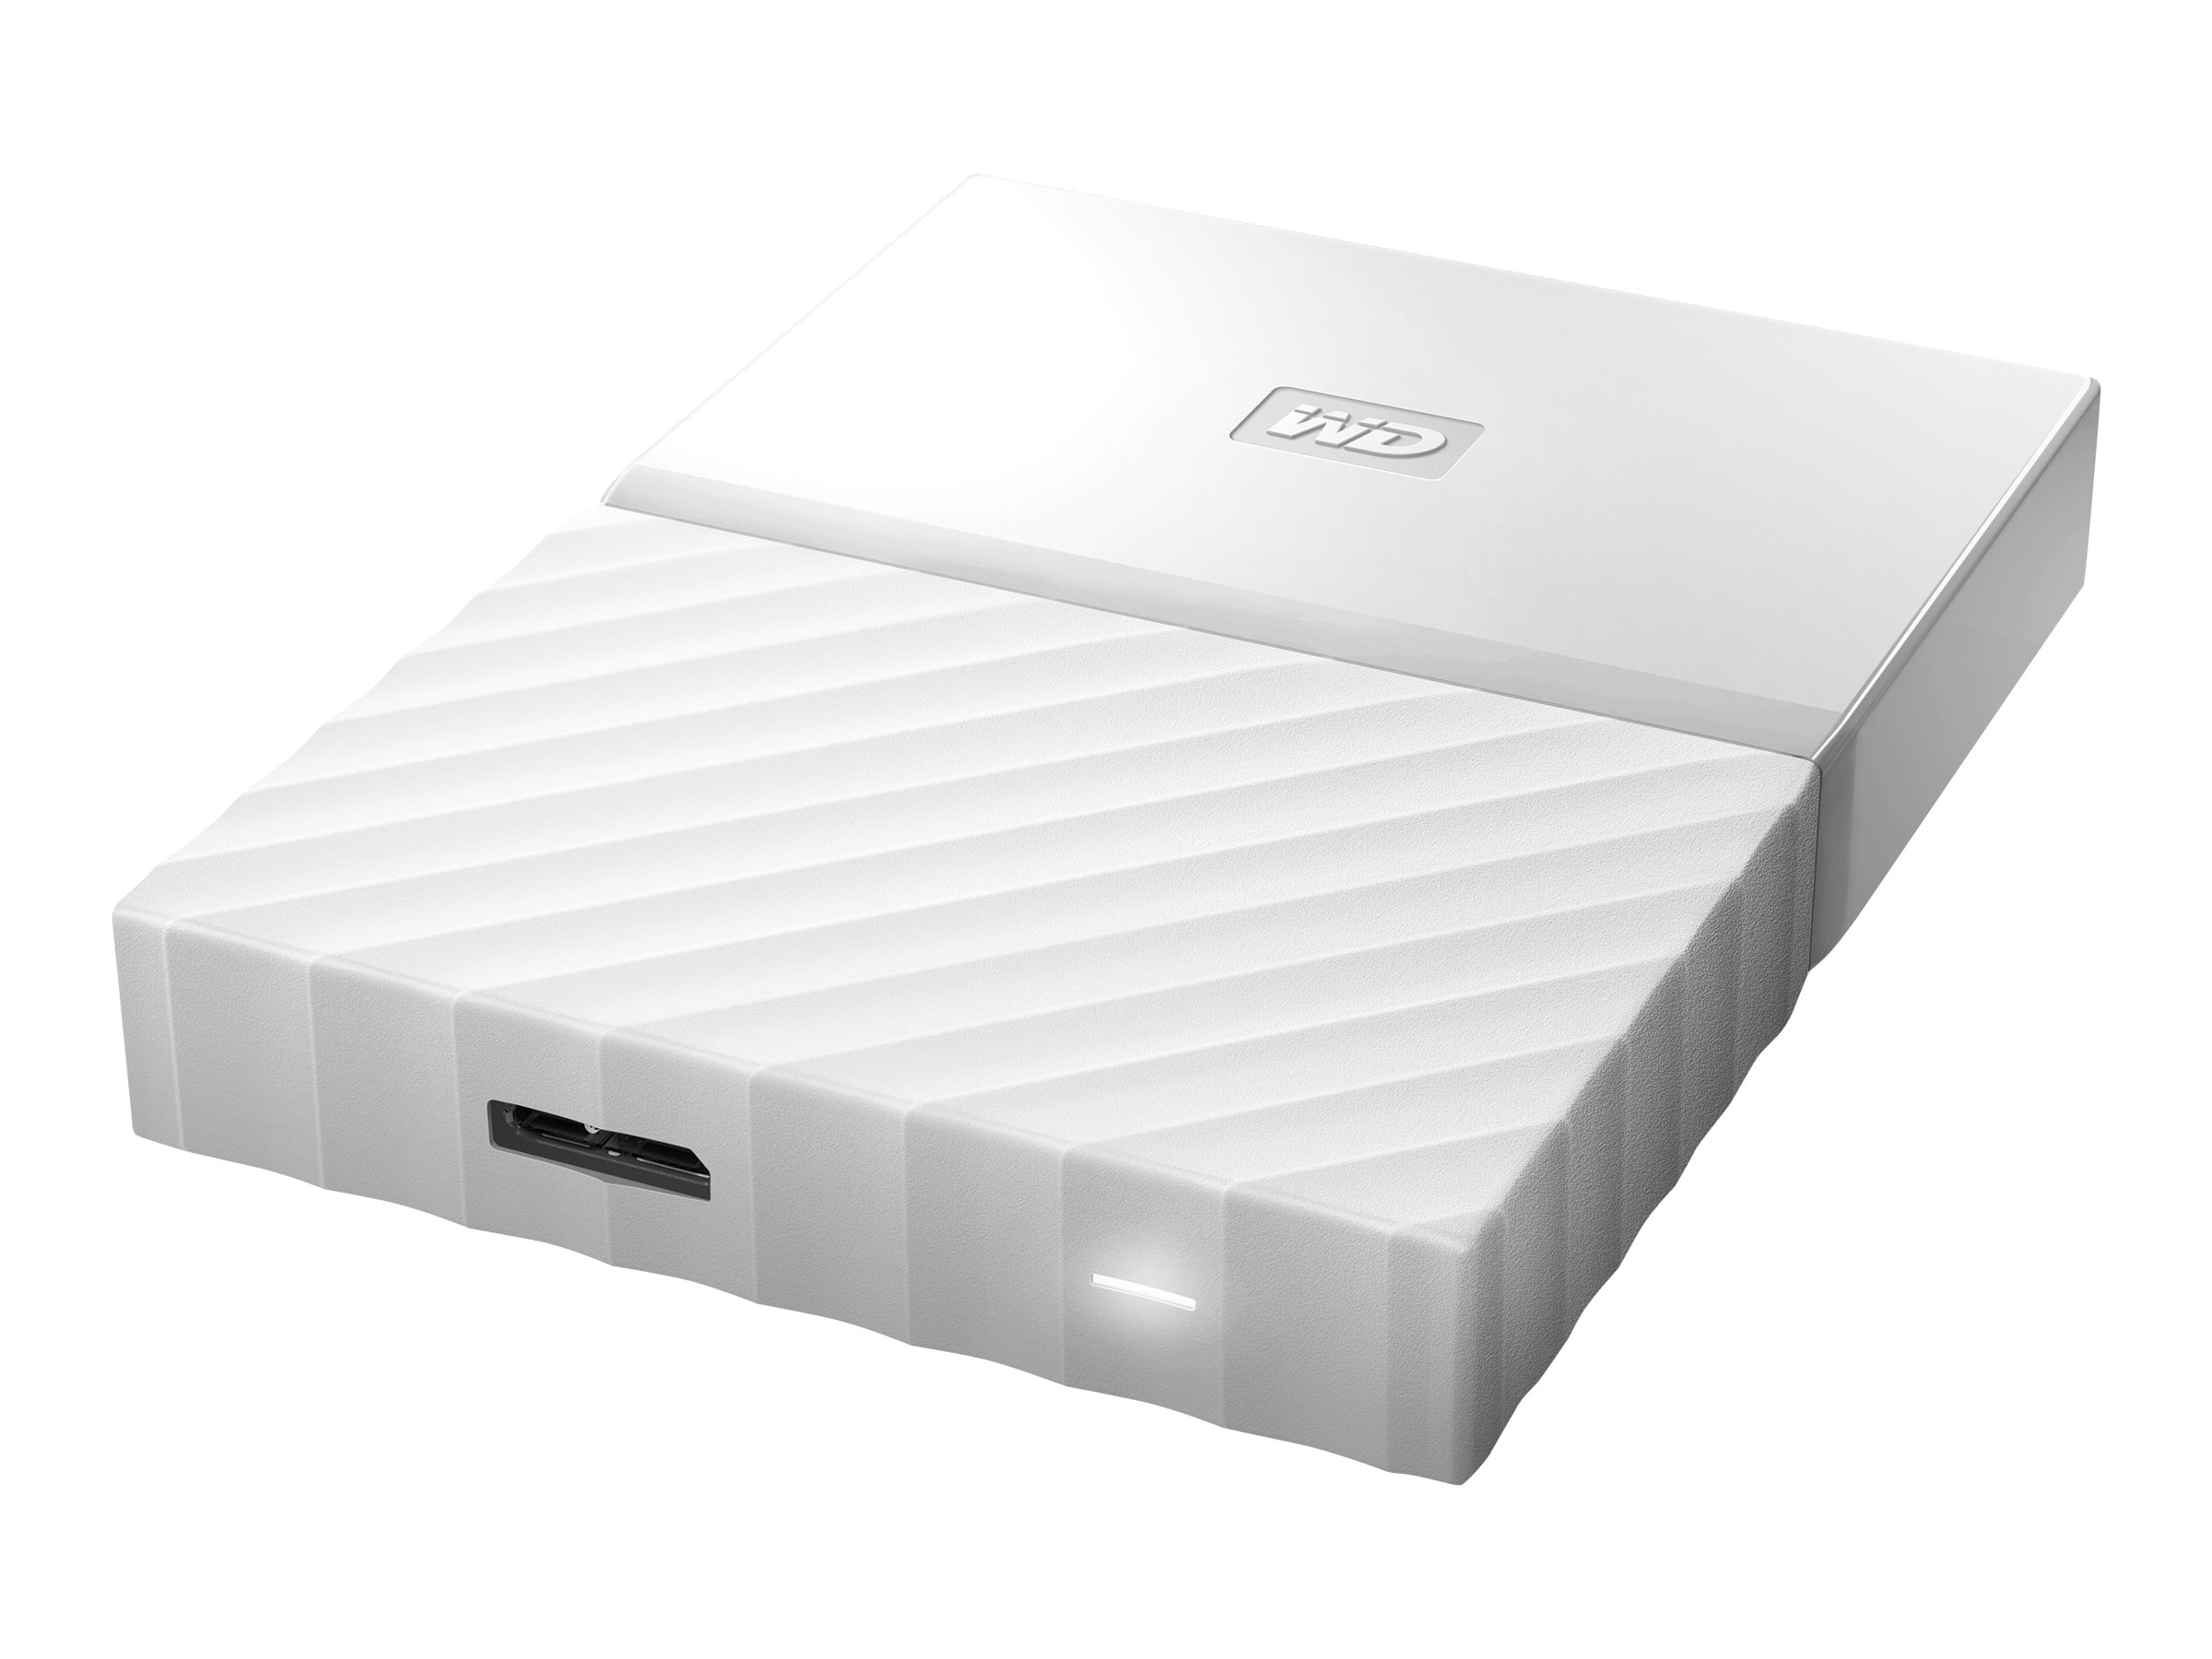 WD 4TB My Passport USB 3.0 Portable Hard Drive - White, WDBYFT0040BWT-WESN